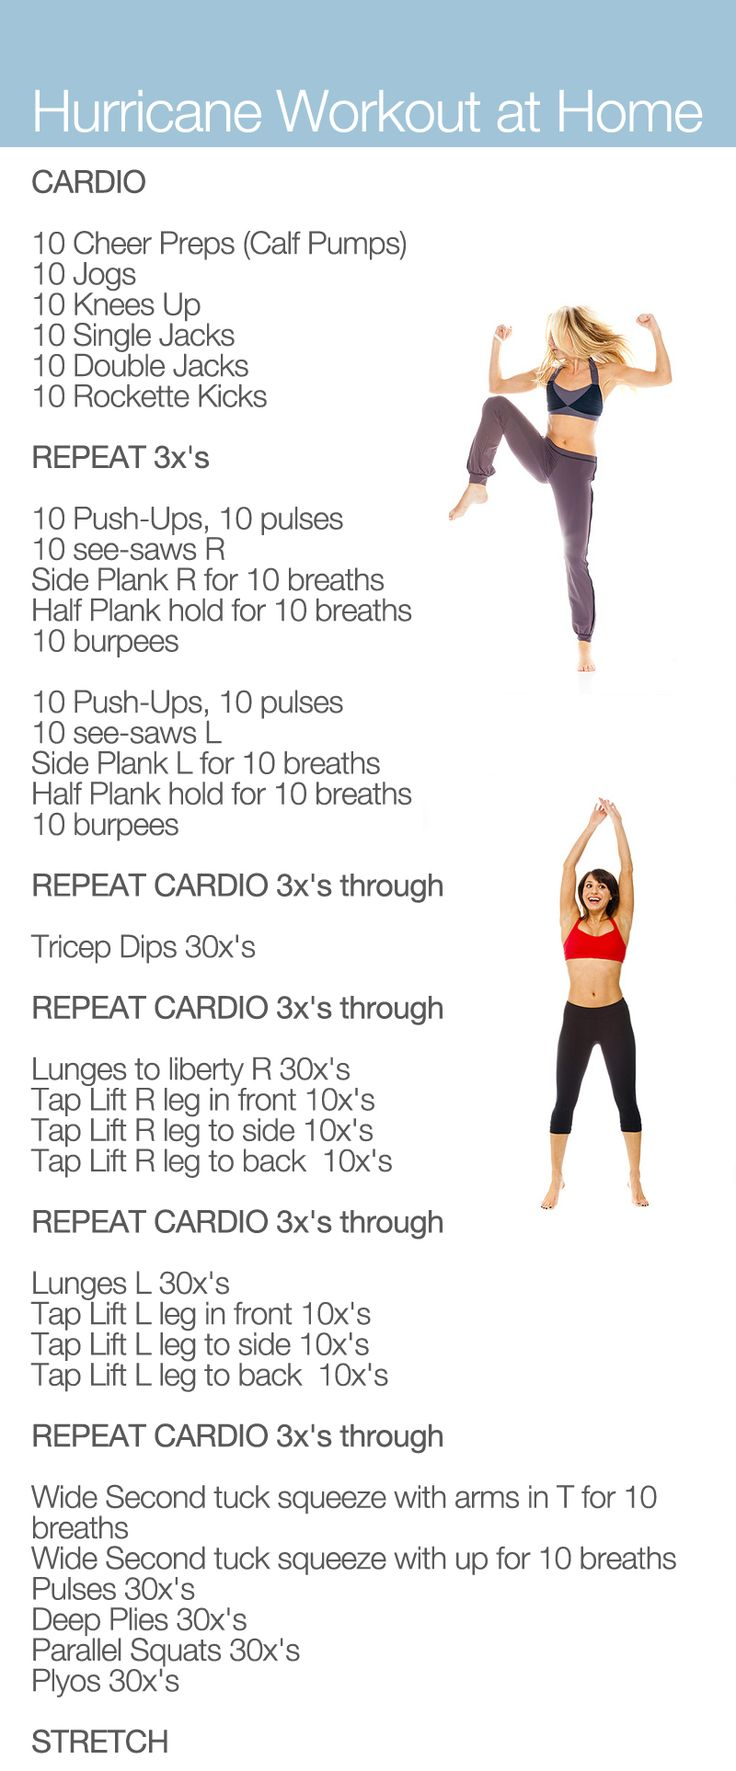 Hurricane Lithe Workout At Home